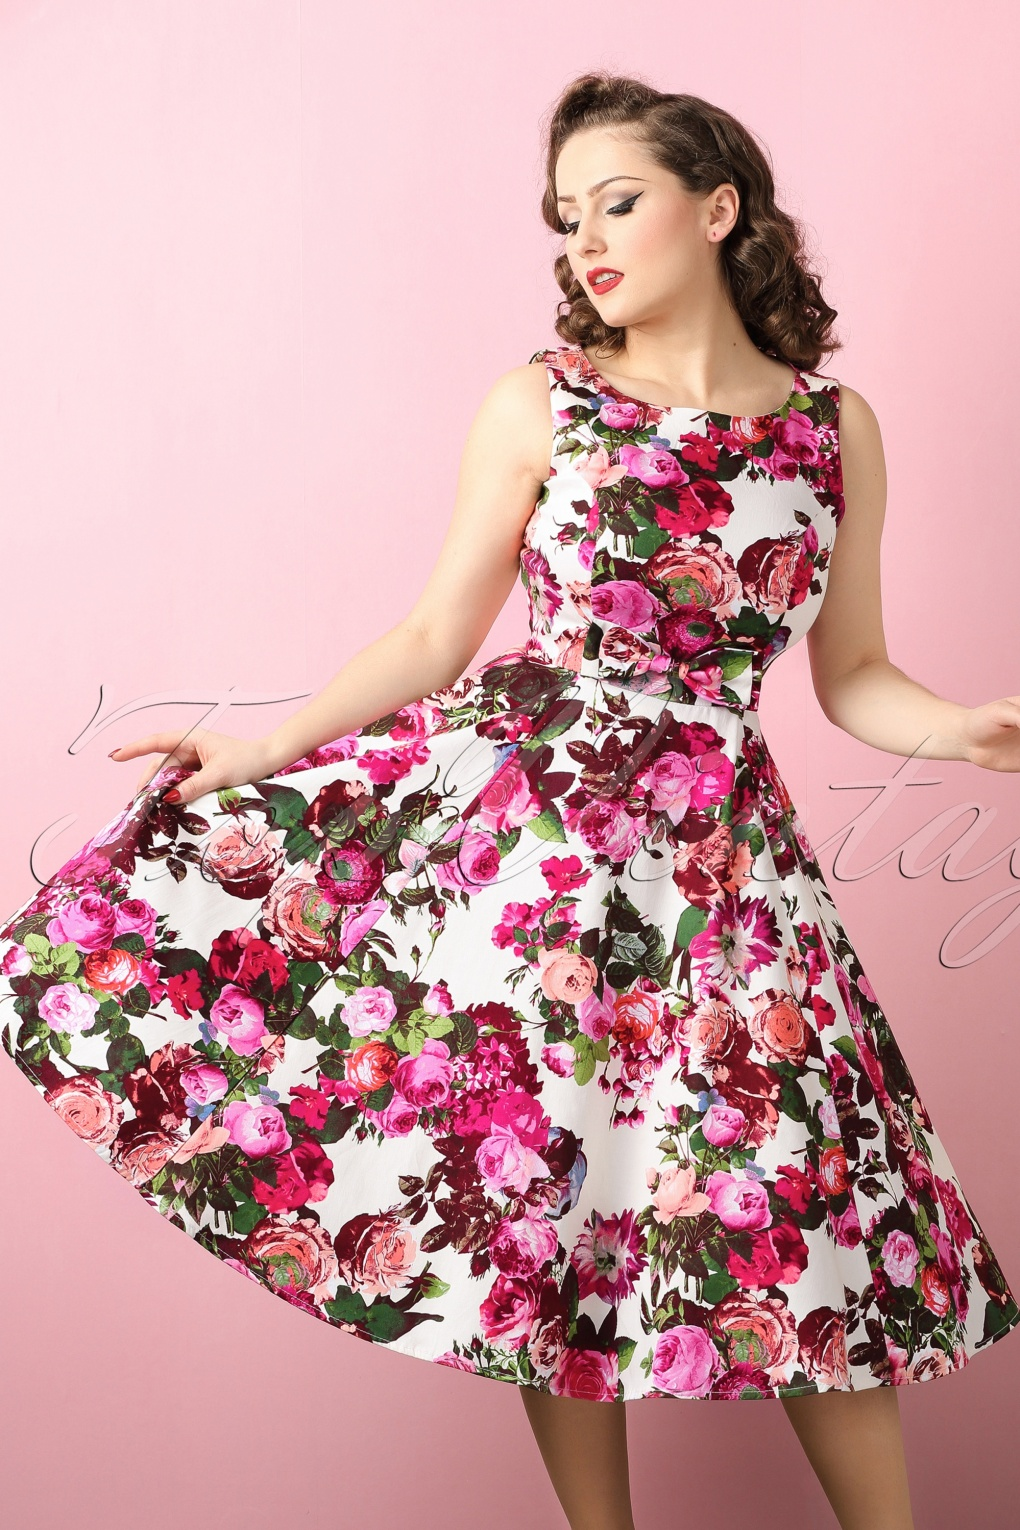 1940s Pinup Dresses for Sale 50s Audrey Floral Swing Dress in Cream £49.15 AT vintagedancer.com